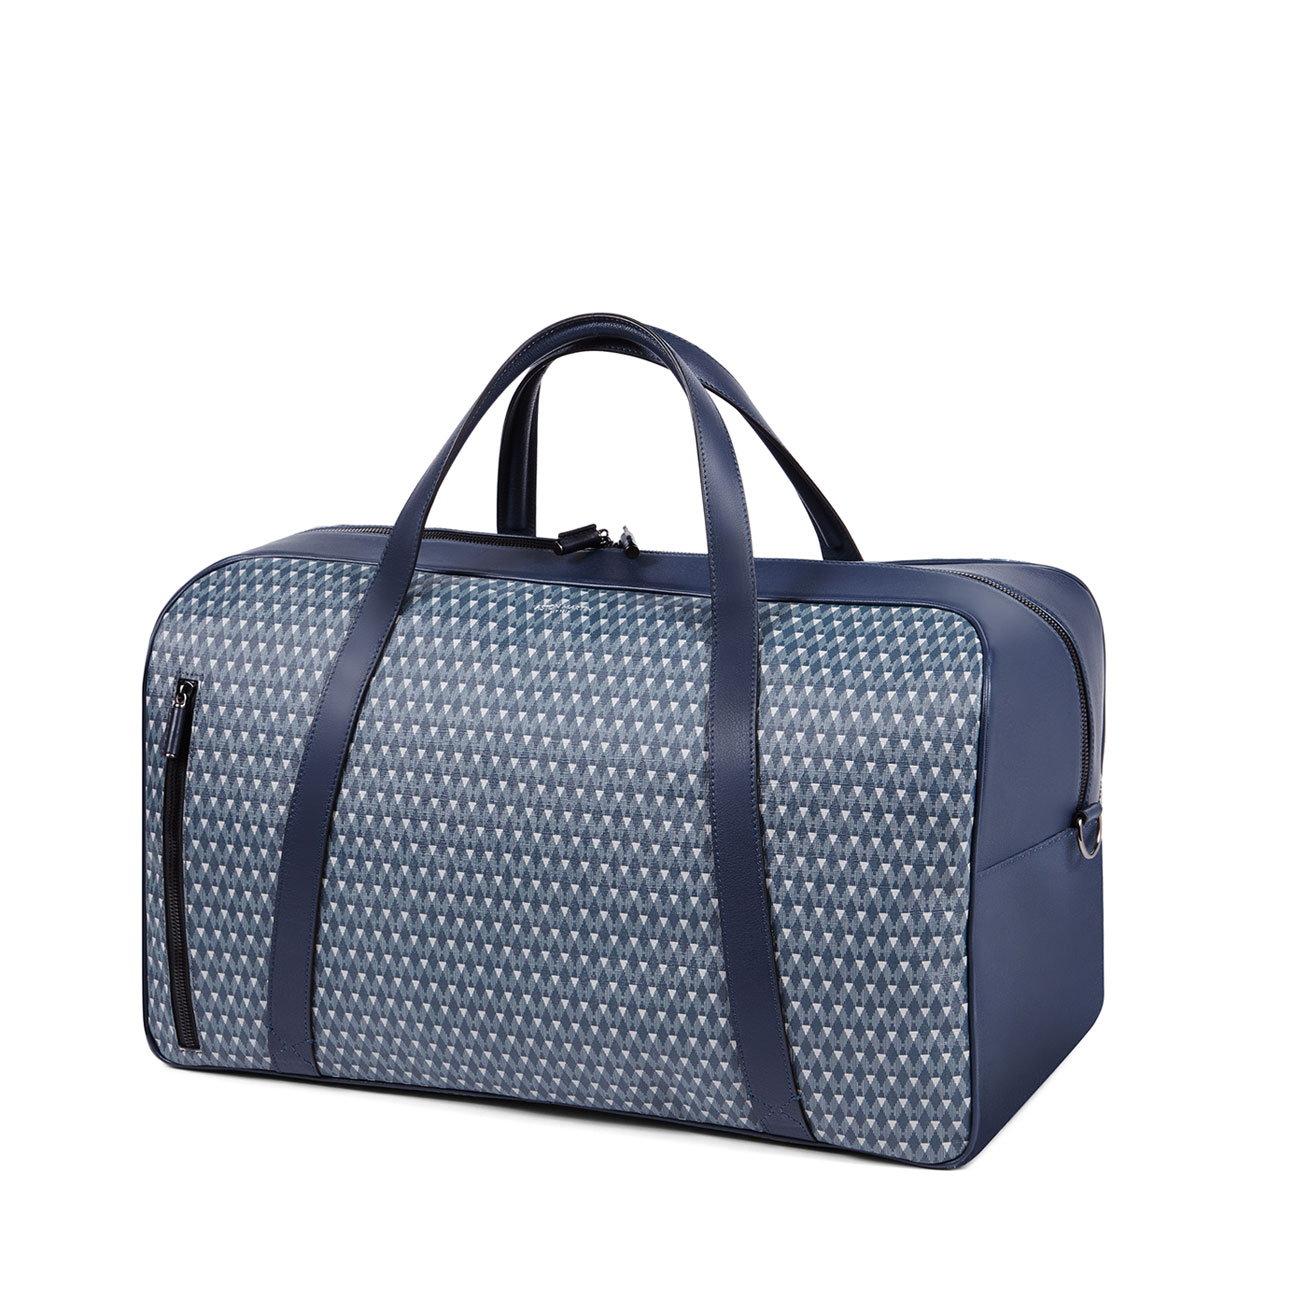 square-duffle